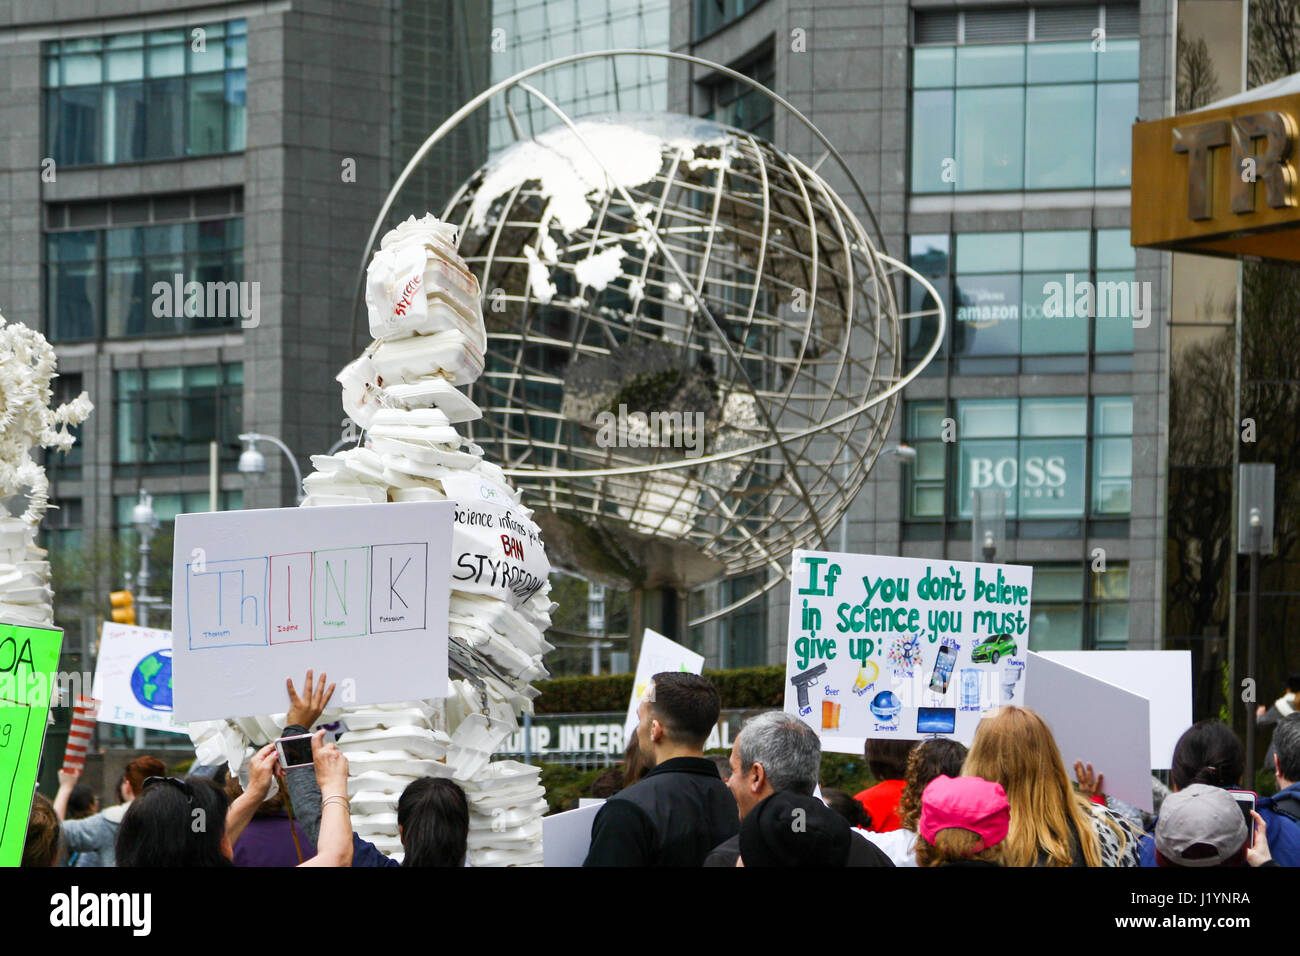 New York, USA. 22nd Apr, 2017. March for Science Credit: Brian D. Bumby/Alamy Live News Stock Photo